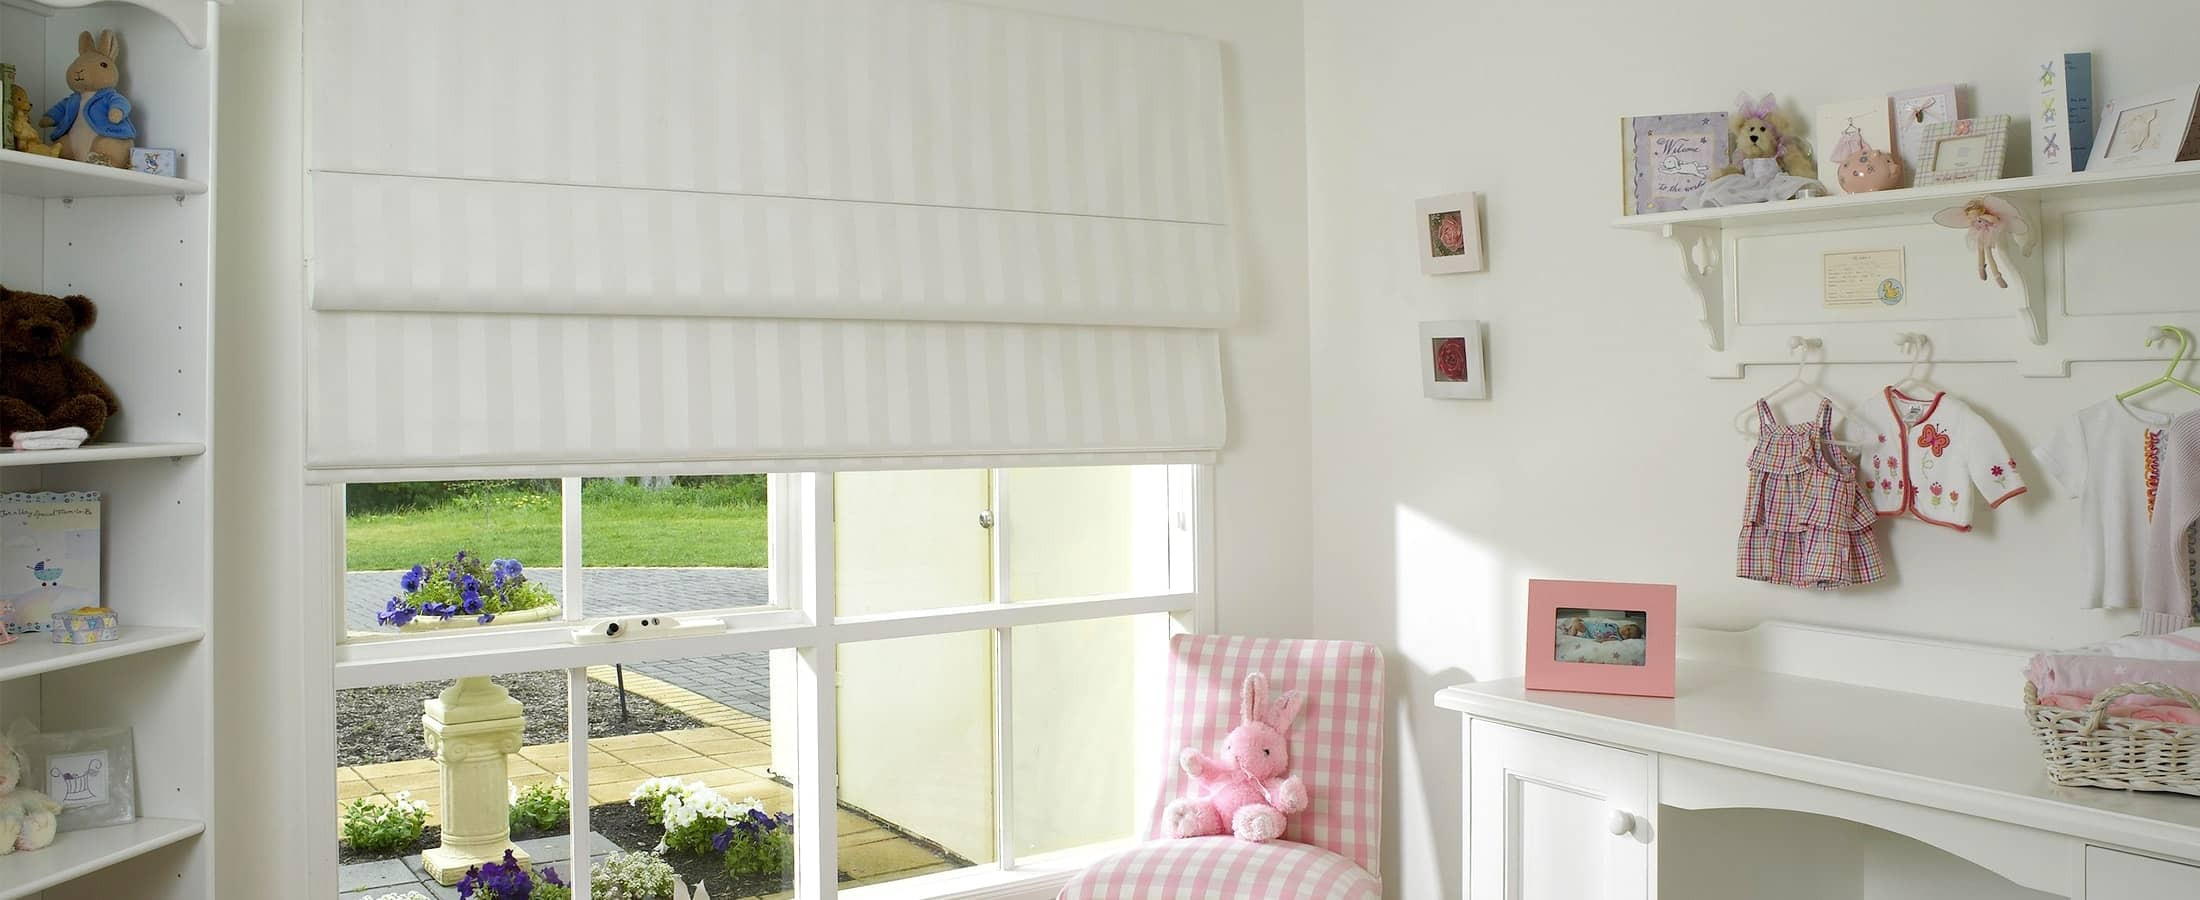 Striped Pattern Blockot Roman Blinds